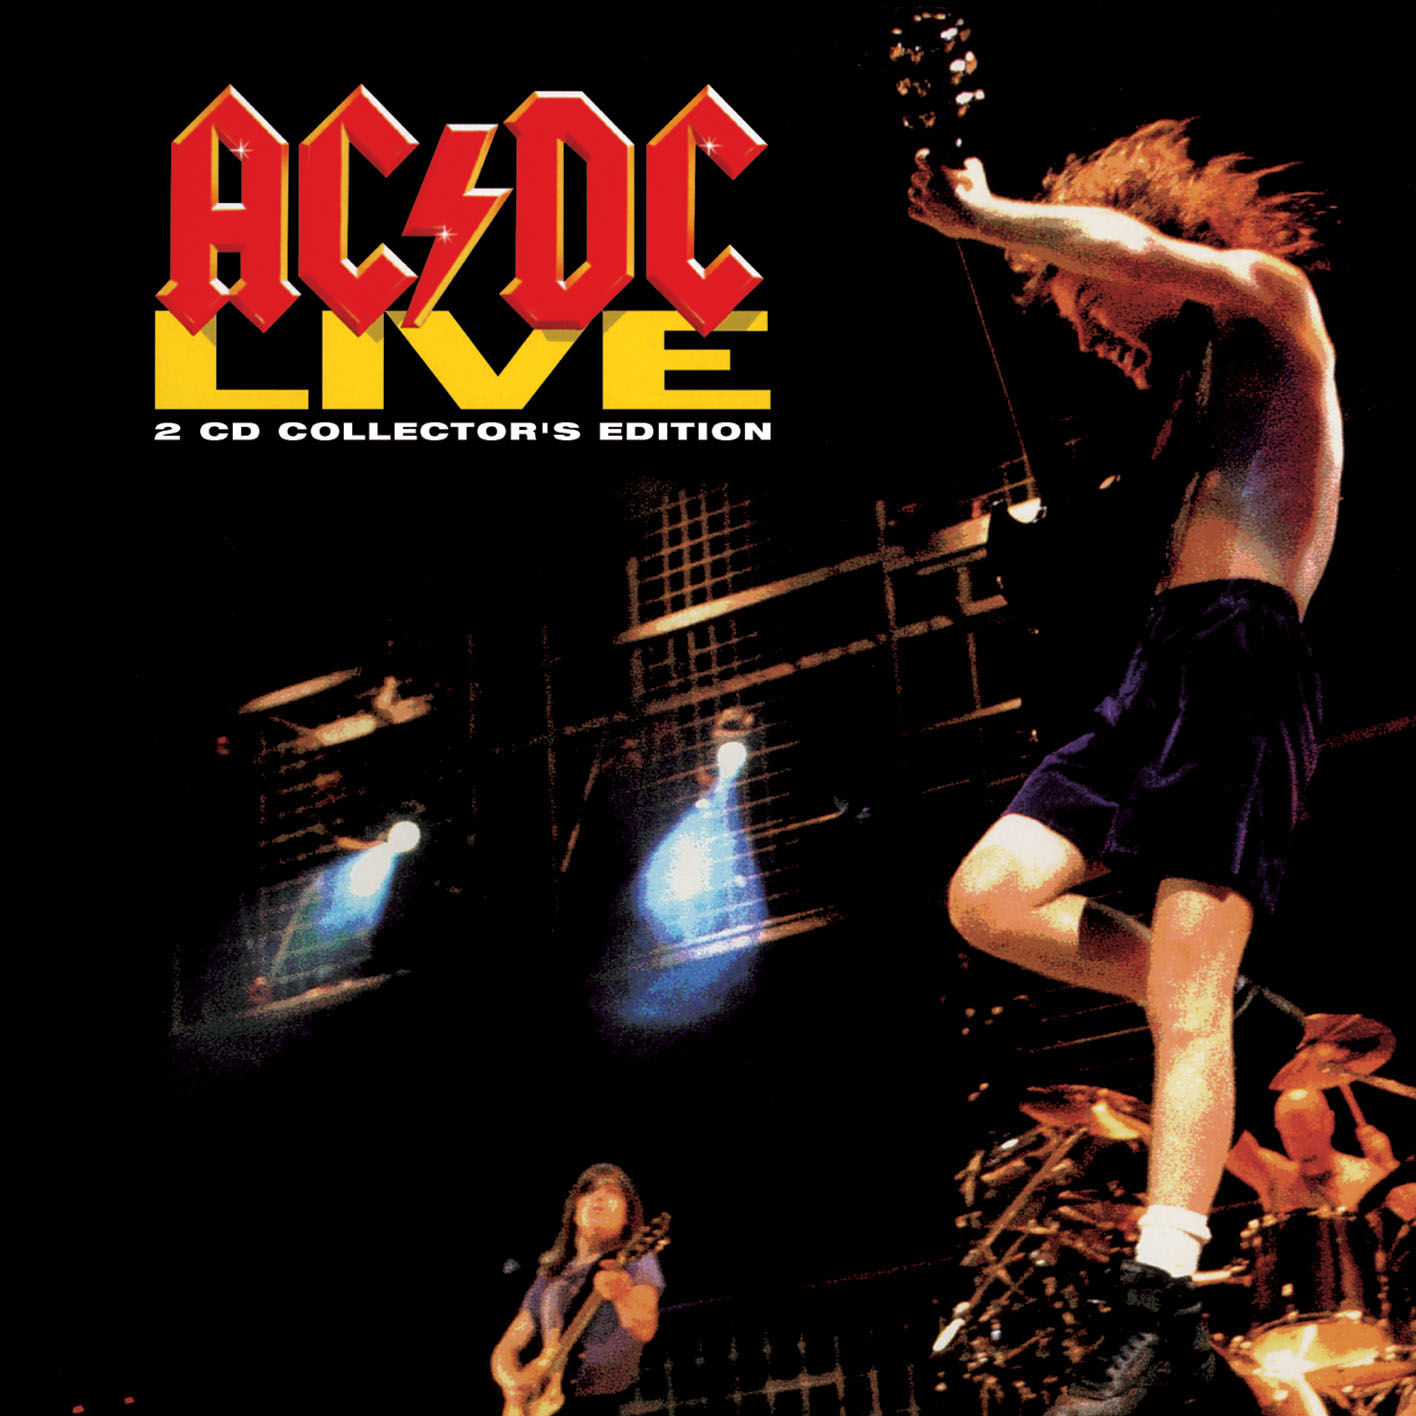 Live (2 CD Collector's Edition)